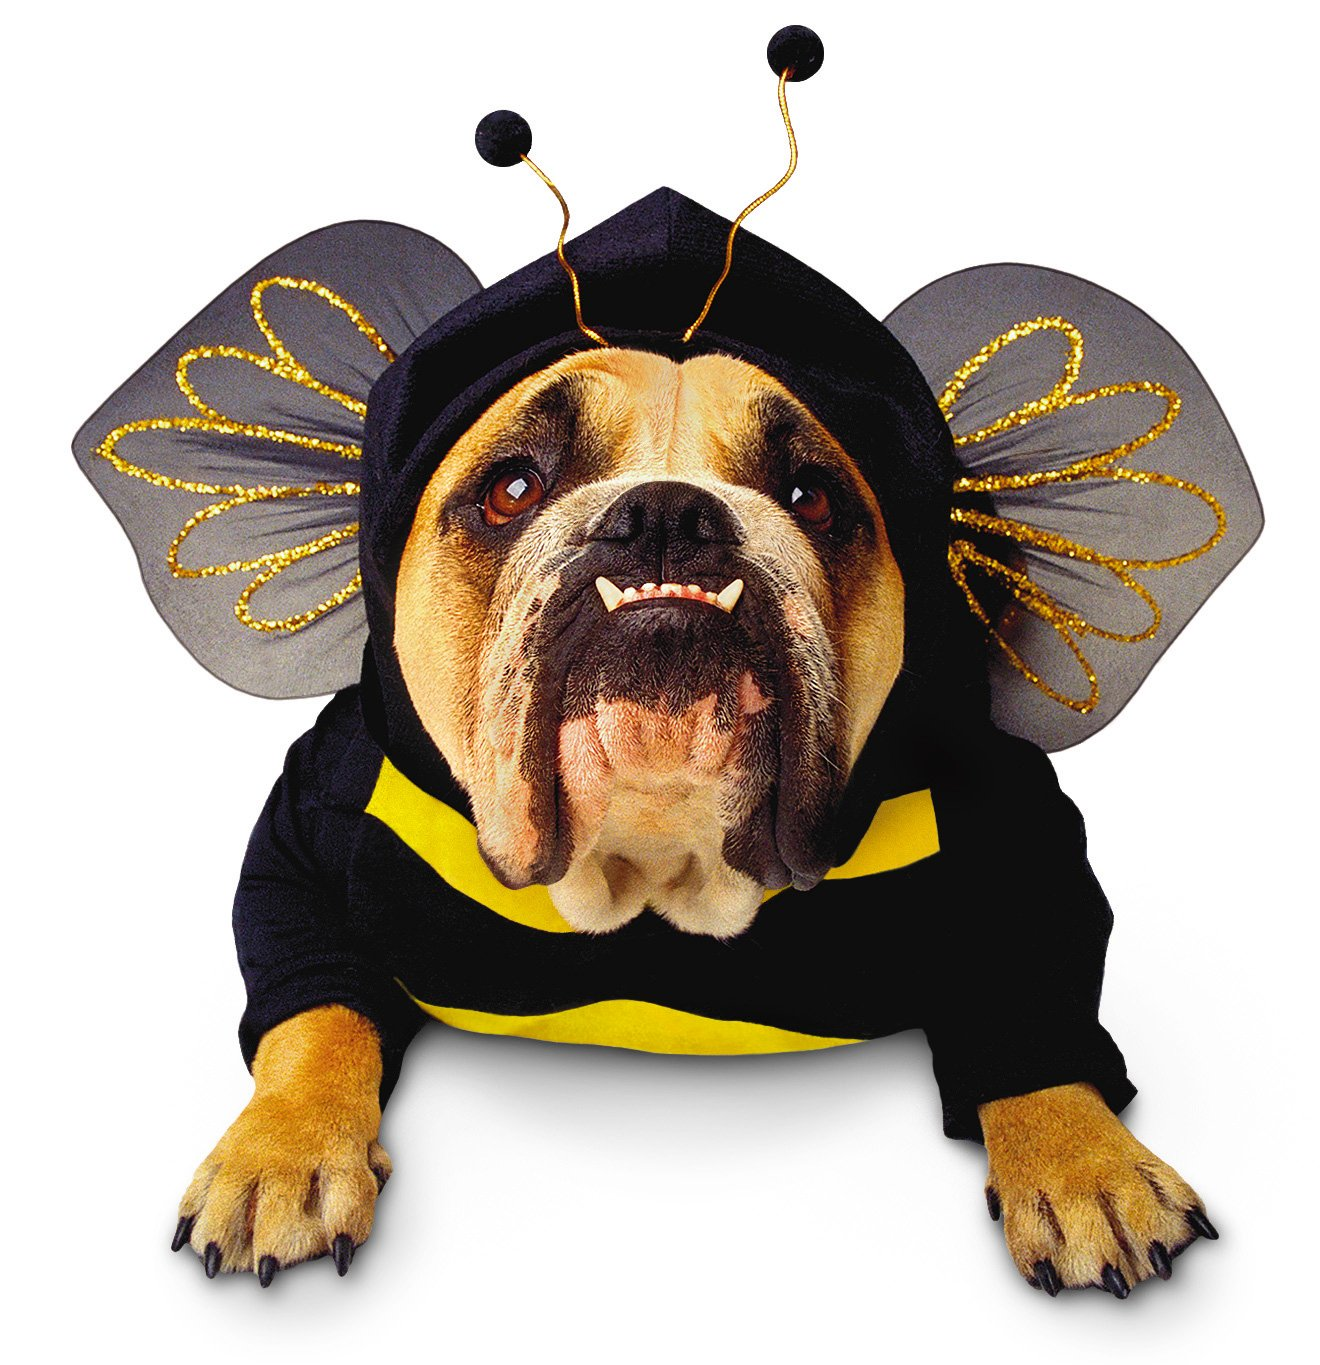 Who wouldn't want to fly like a bumblebee?